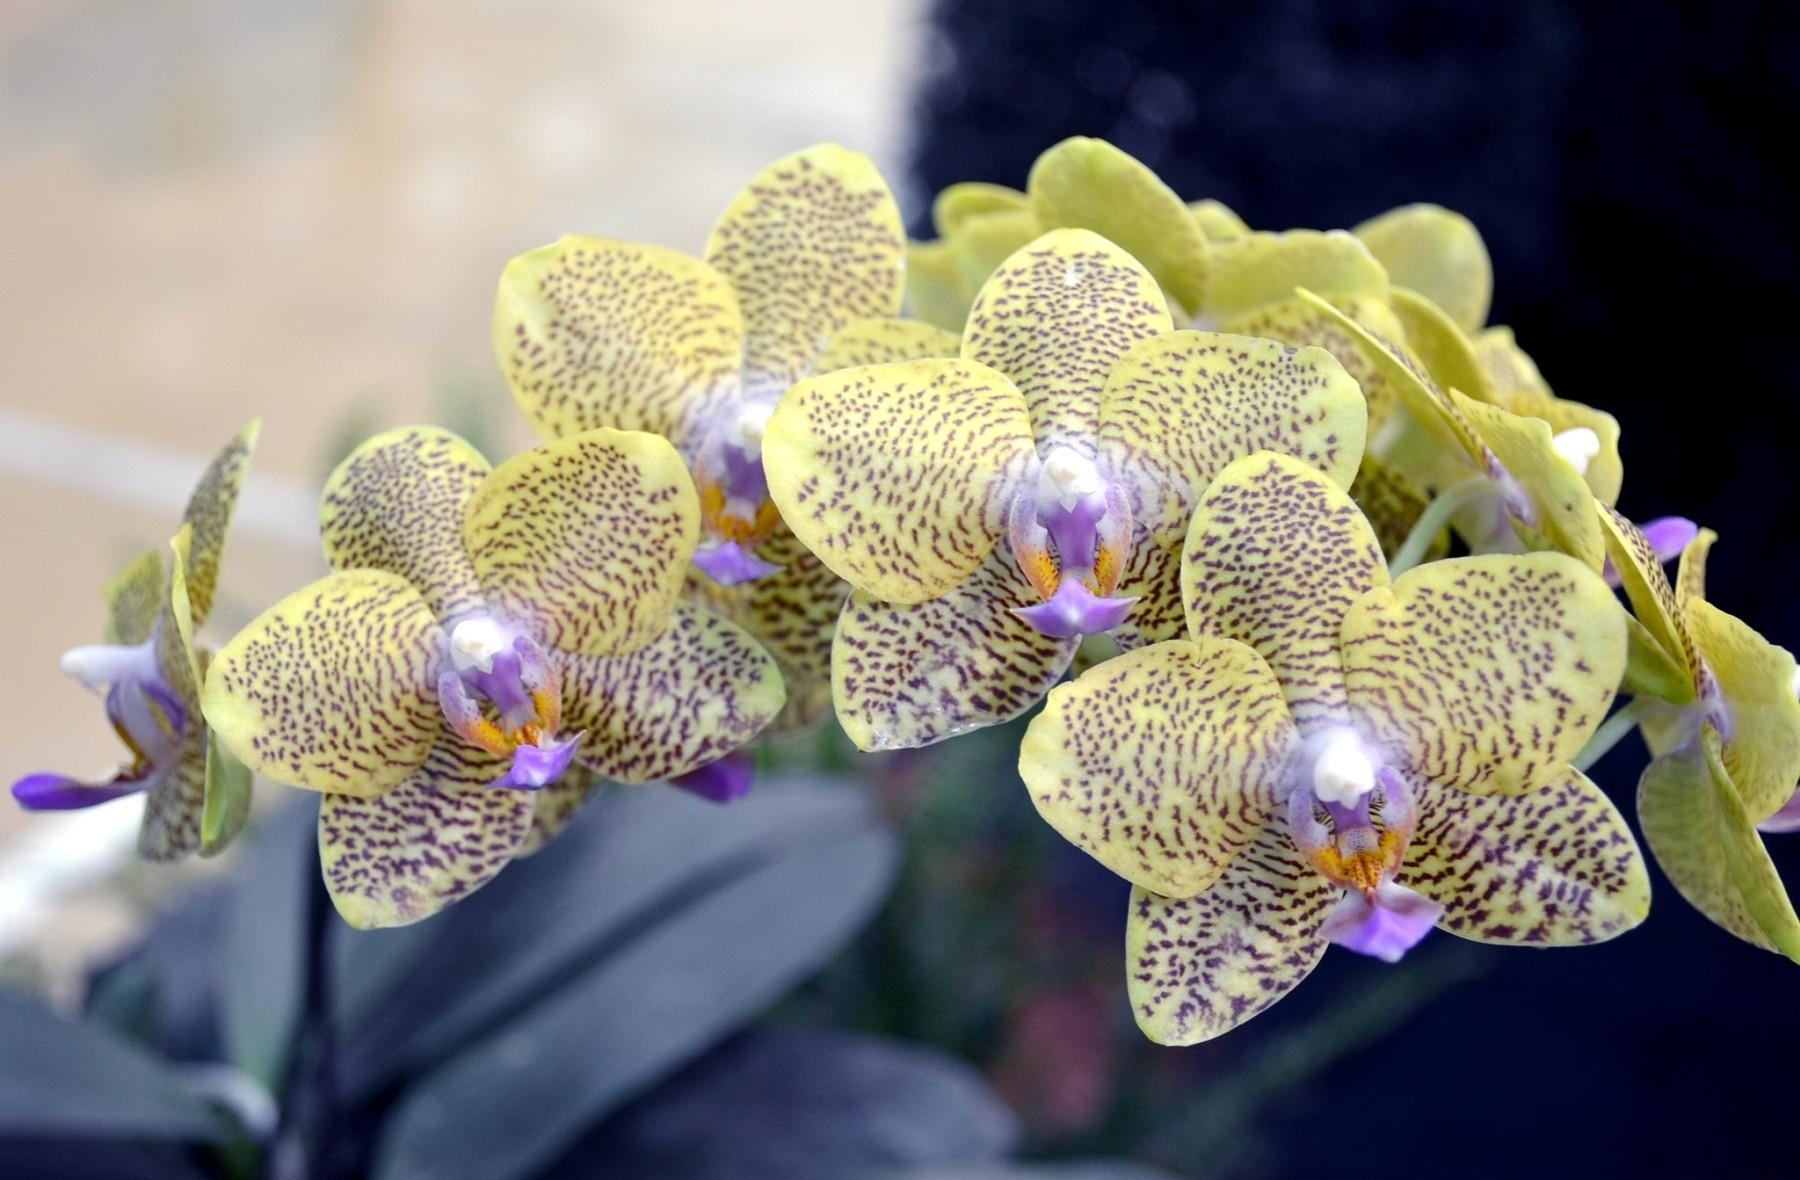 Shenzhen Nongke Orchid Download Free Backgrounds HD